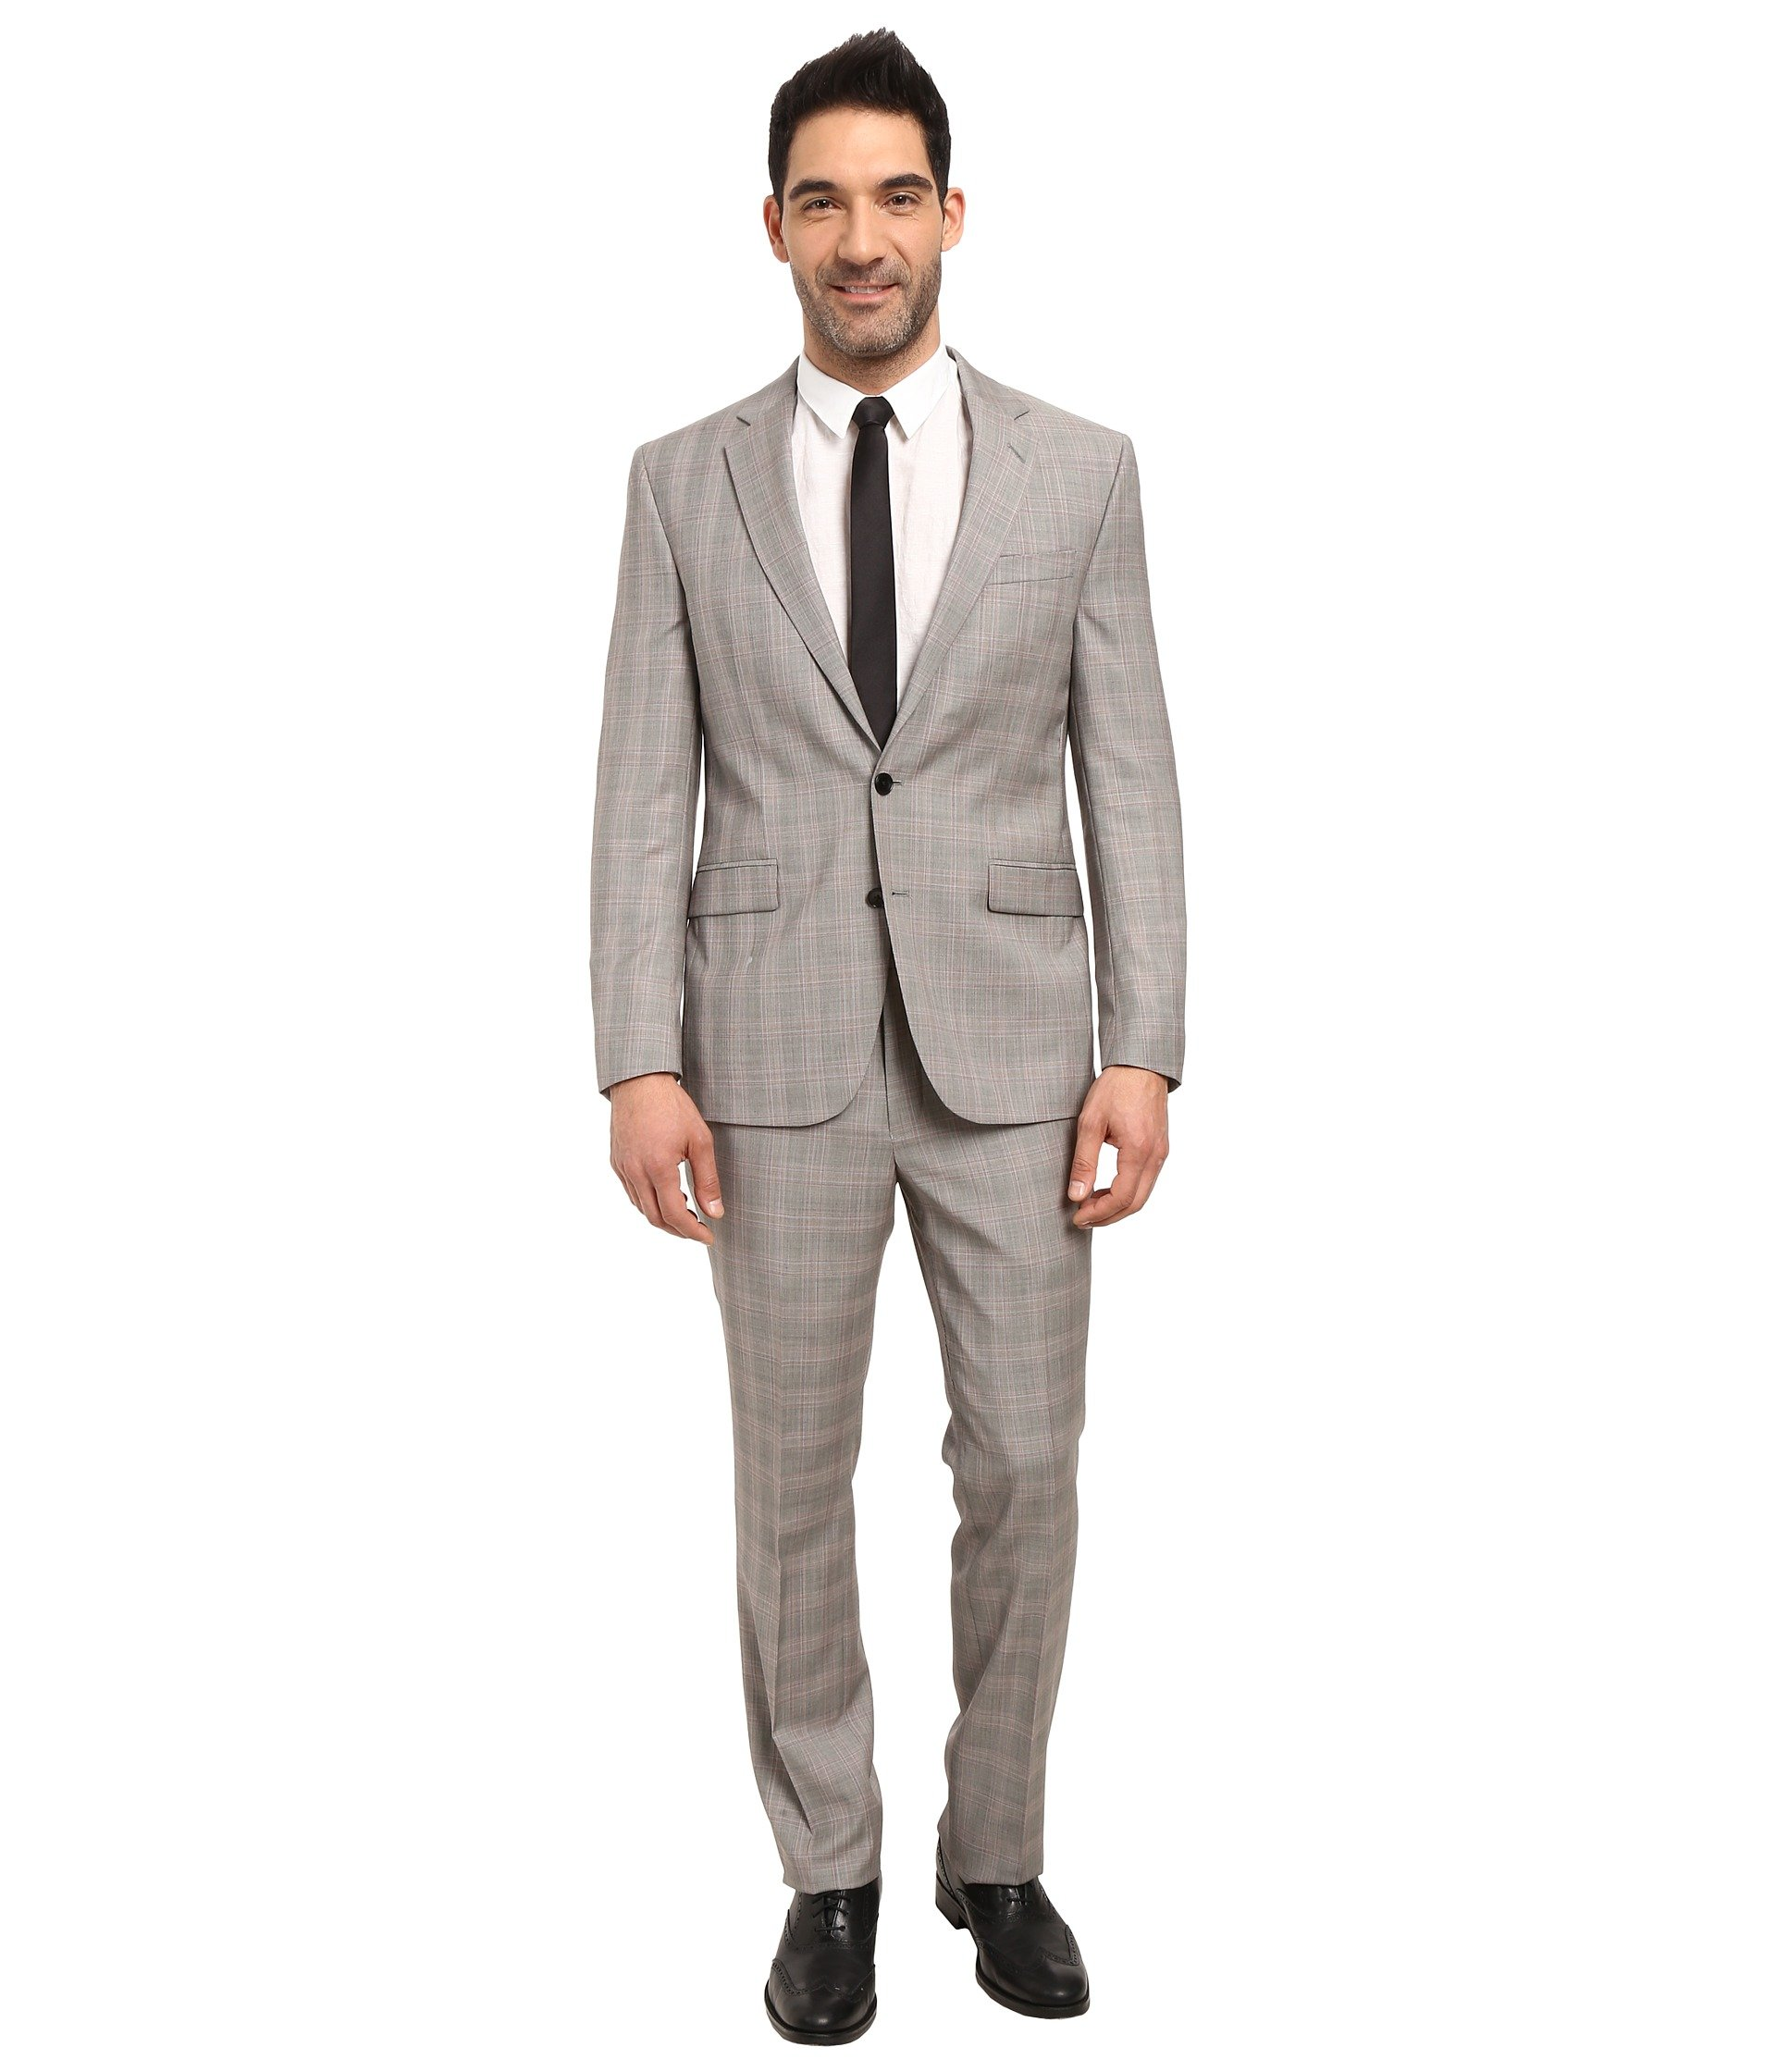 Vestido para Hombre Kenneth Cole Reaction Slim Fit Grey Plaid Suit  + Kenneth Cole Reaction en VeoyCompro.net